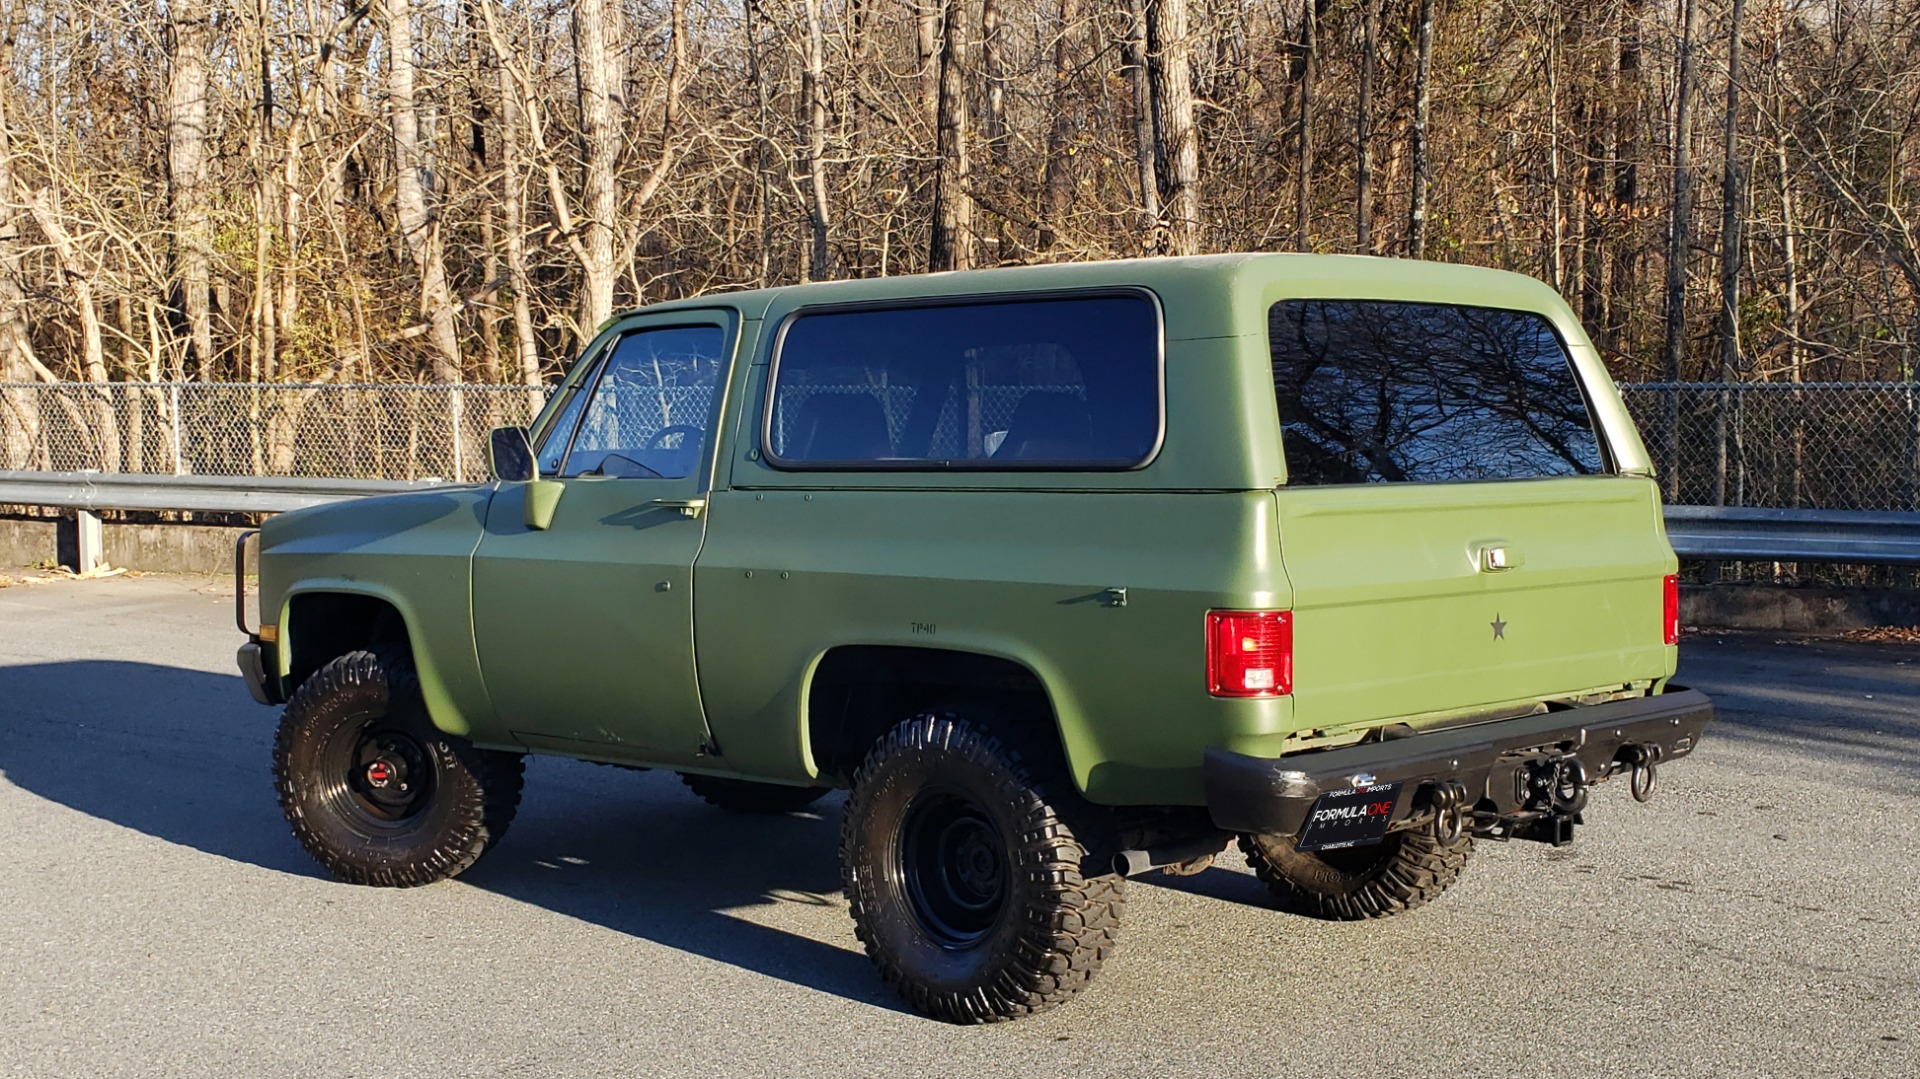 Used 1985 Chevrolet BLAZER D10 MILITARY SUV / 4X4 / 6.2L DIESEL V8 / VINTAGE AIR for sale $15,000 at Formula Imports in Charlotte NC 28227 5